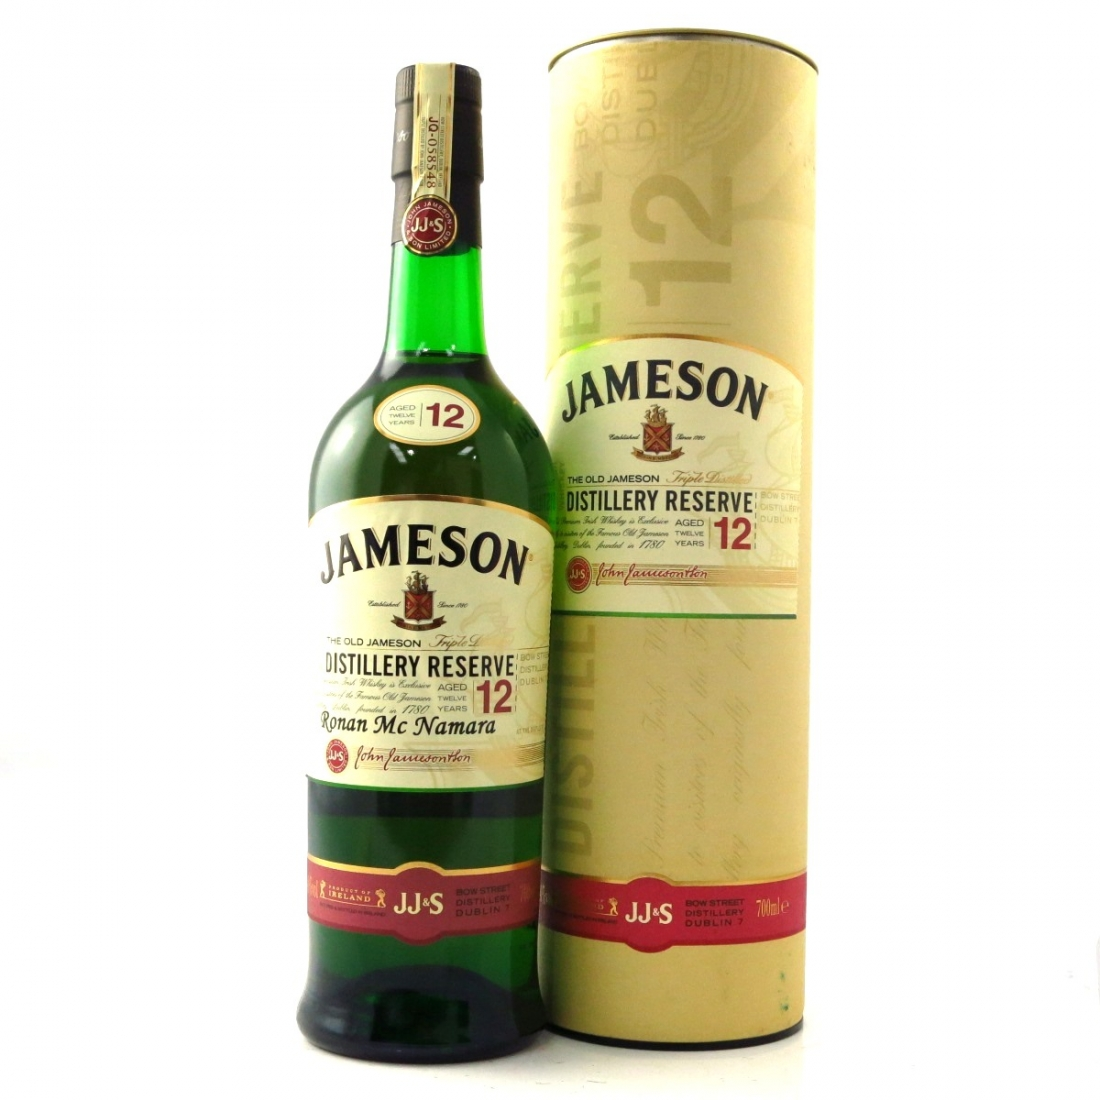 c680e9a1d59 Jameson 12 Year Old Distillery Reserve